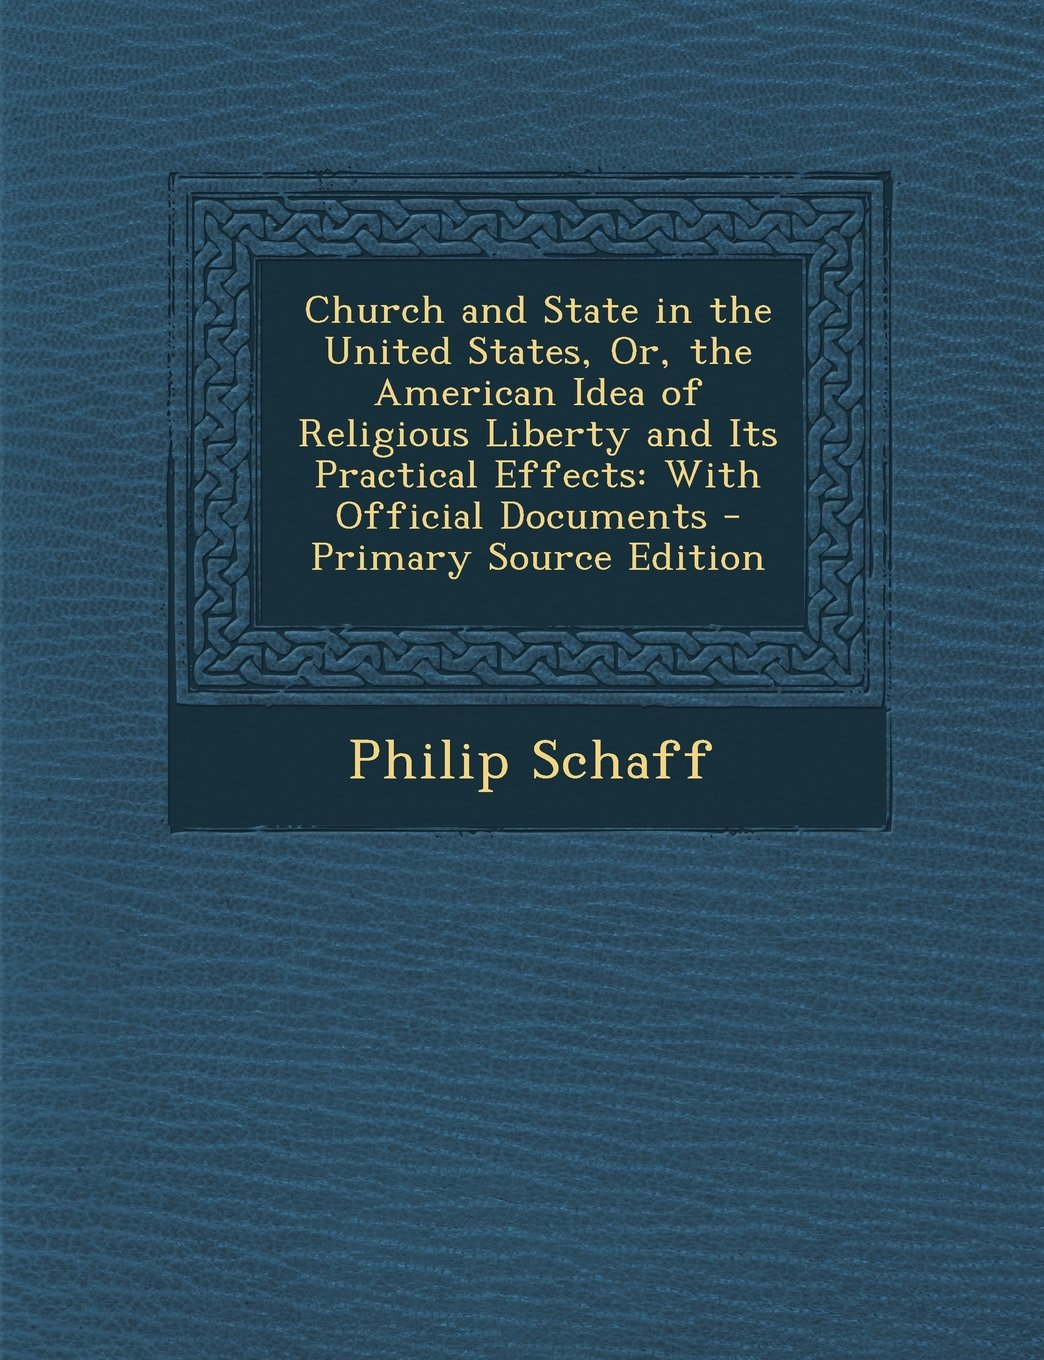 Church and State in the United States, Or, the American Idea of Religious Liberty and Its Practical Effects: With Official Documents - Primary Source pdf epub